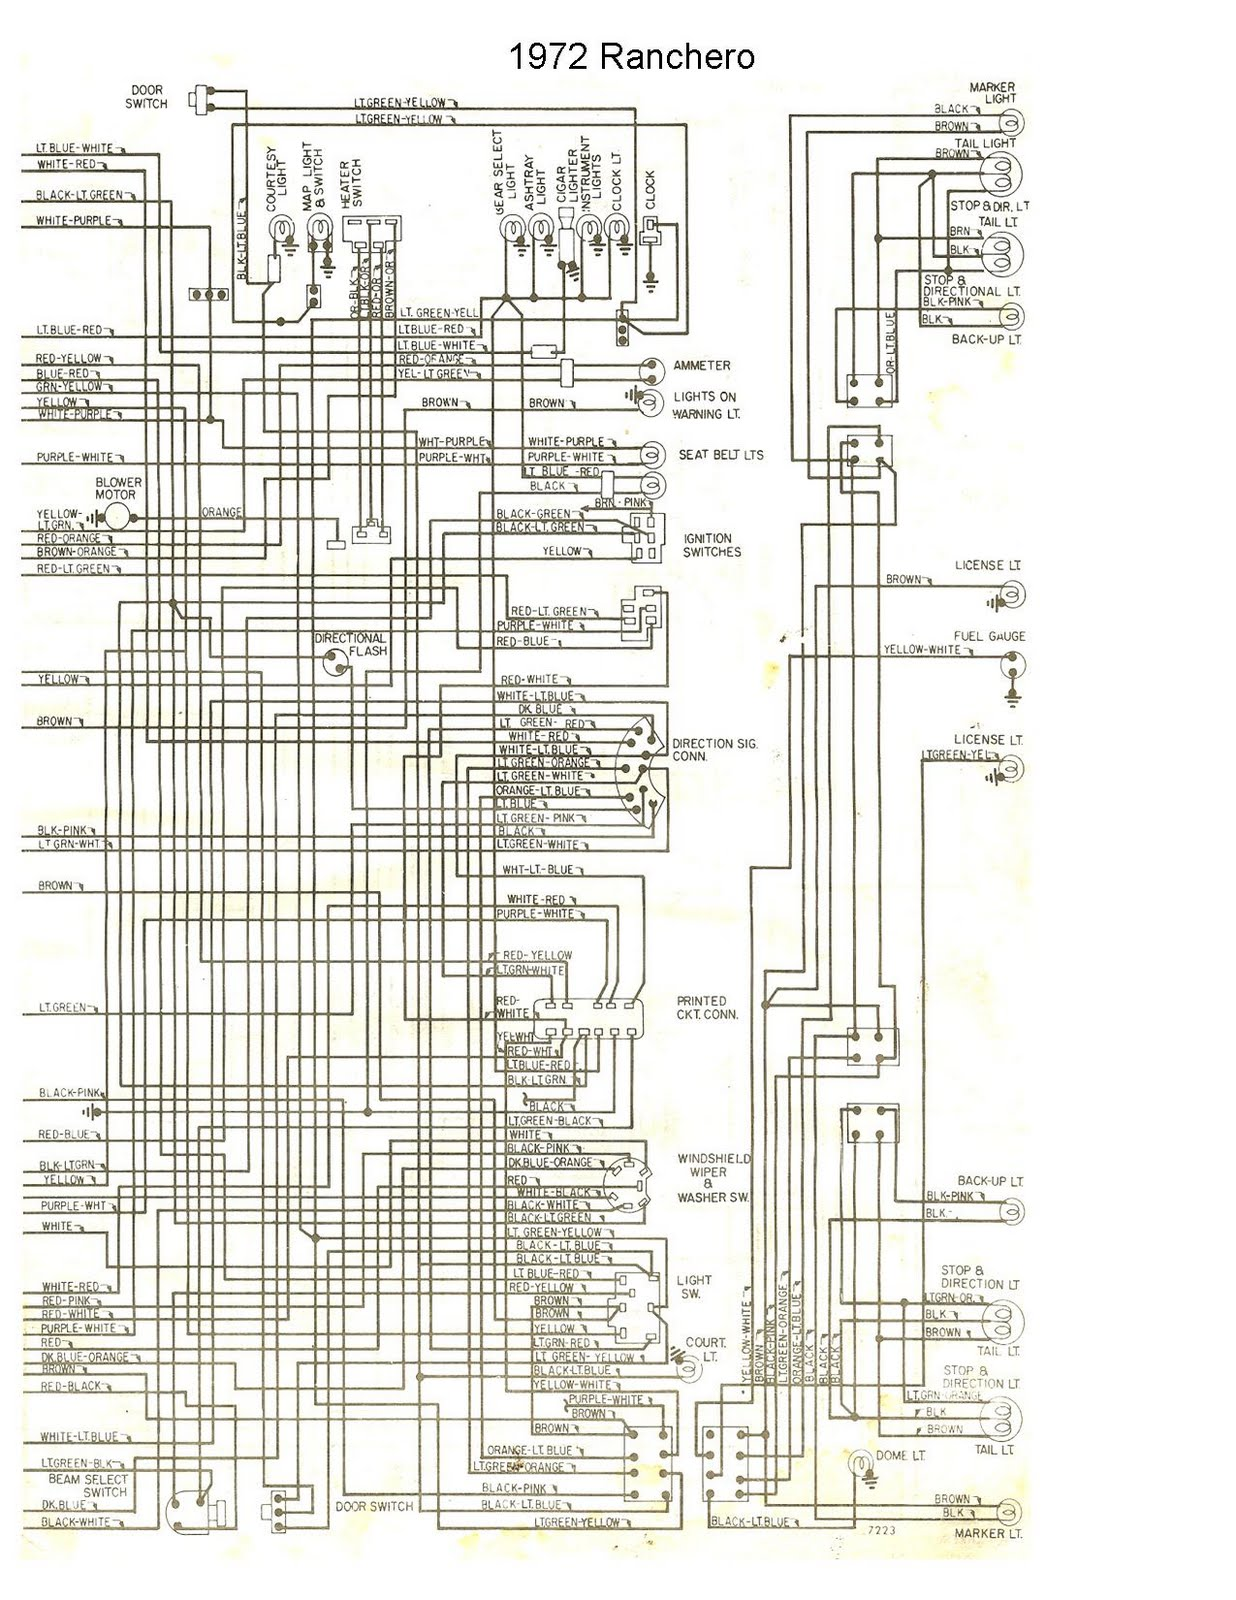 wiring schematic diagram ford ranchero 1972 free auto wiring diagram 1972 ford ranchero wiring diagram F100 Wiring Diagram at crackthecode.co